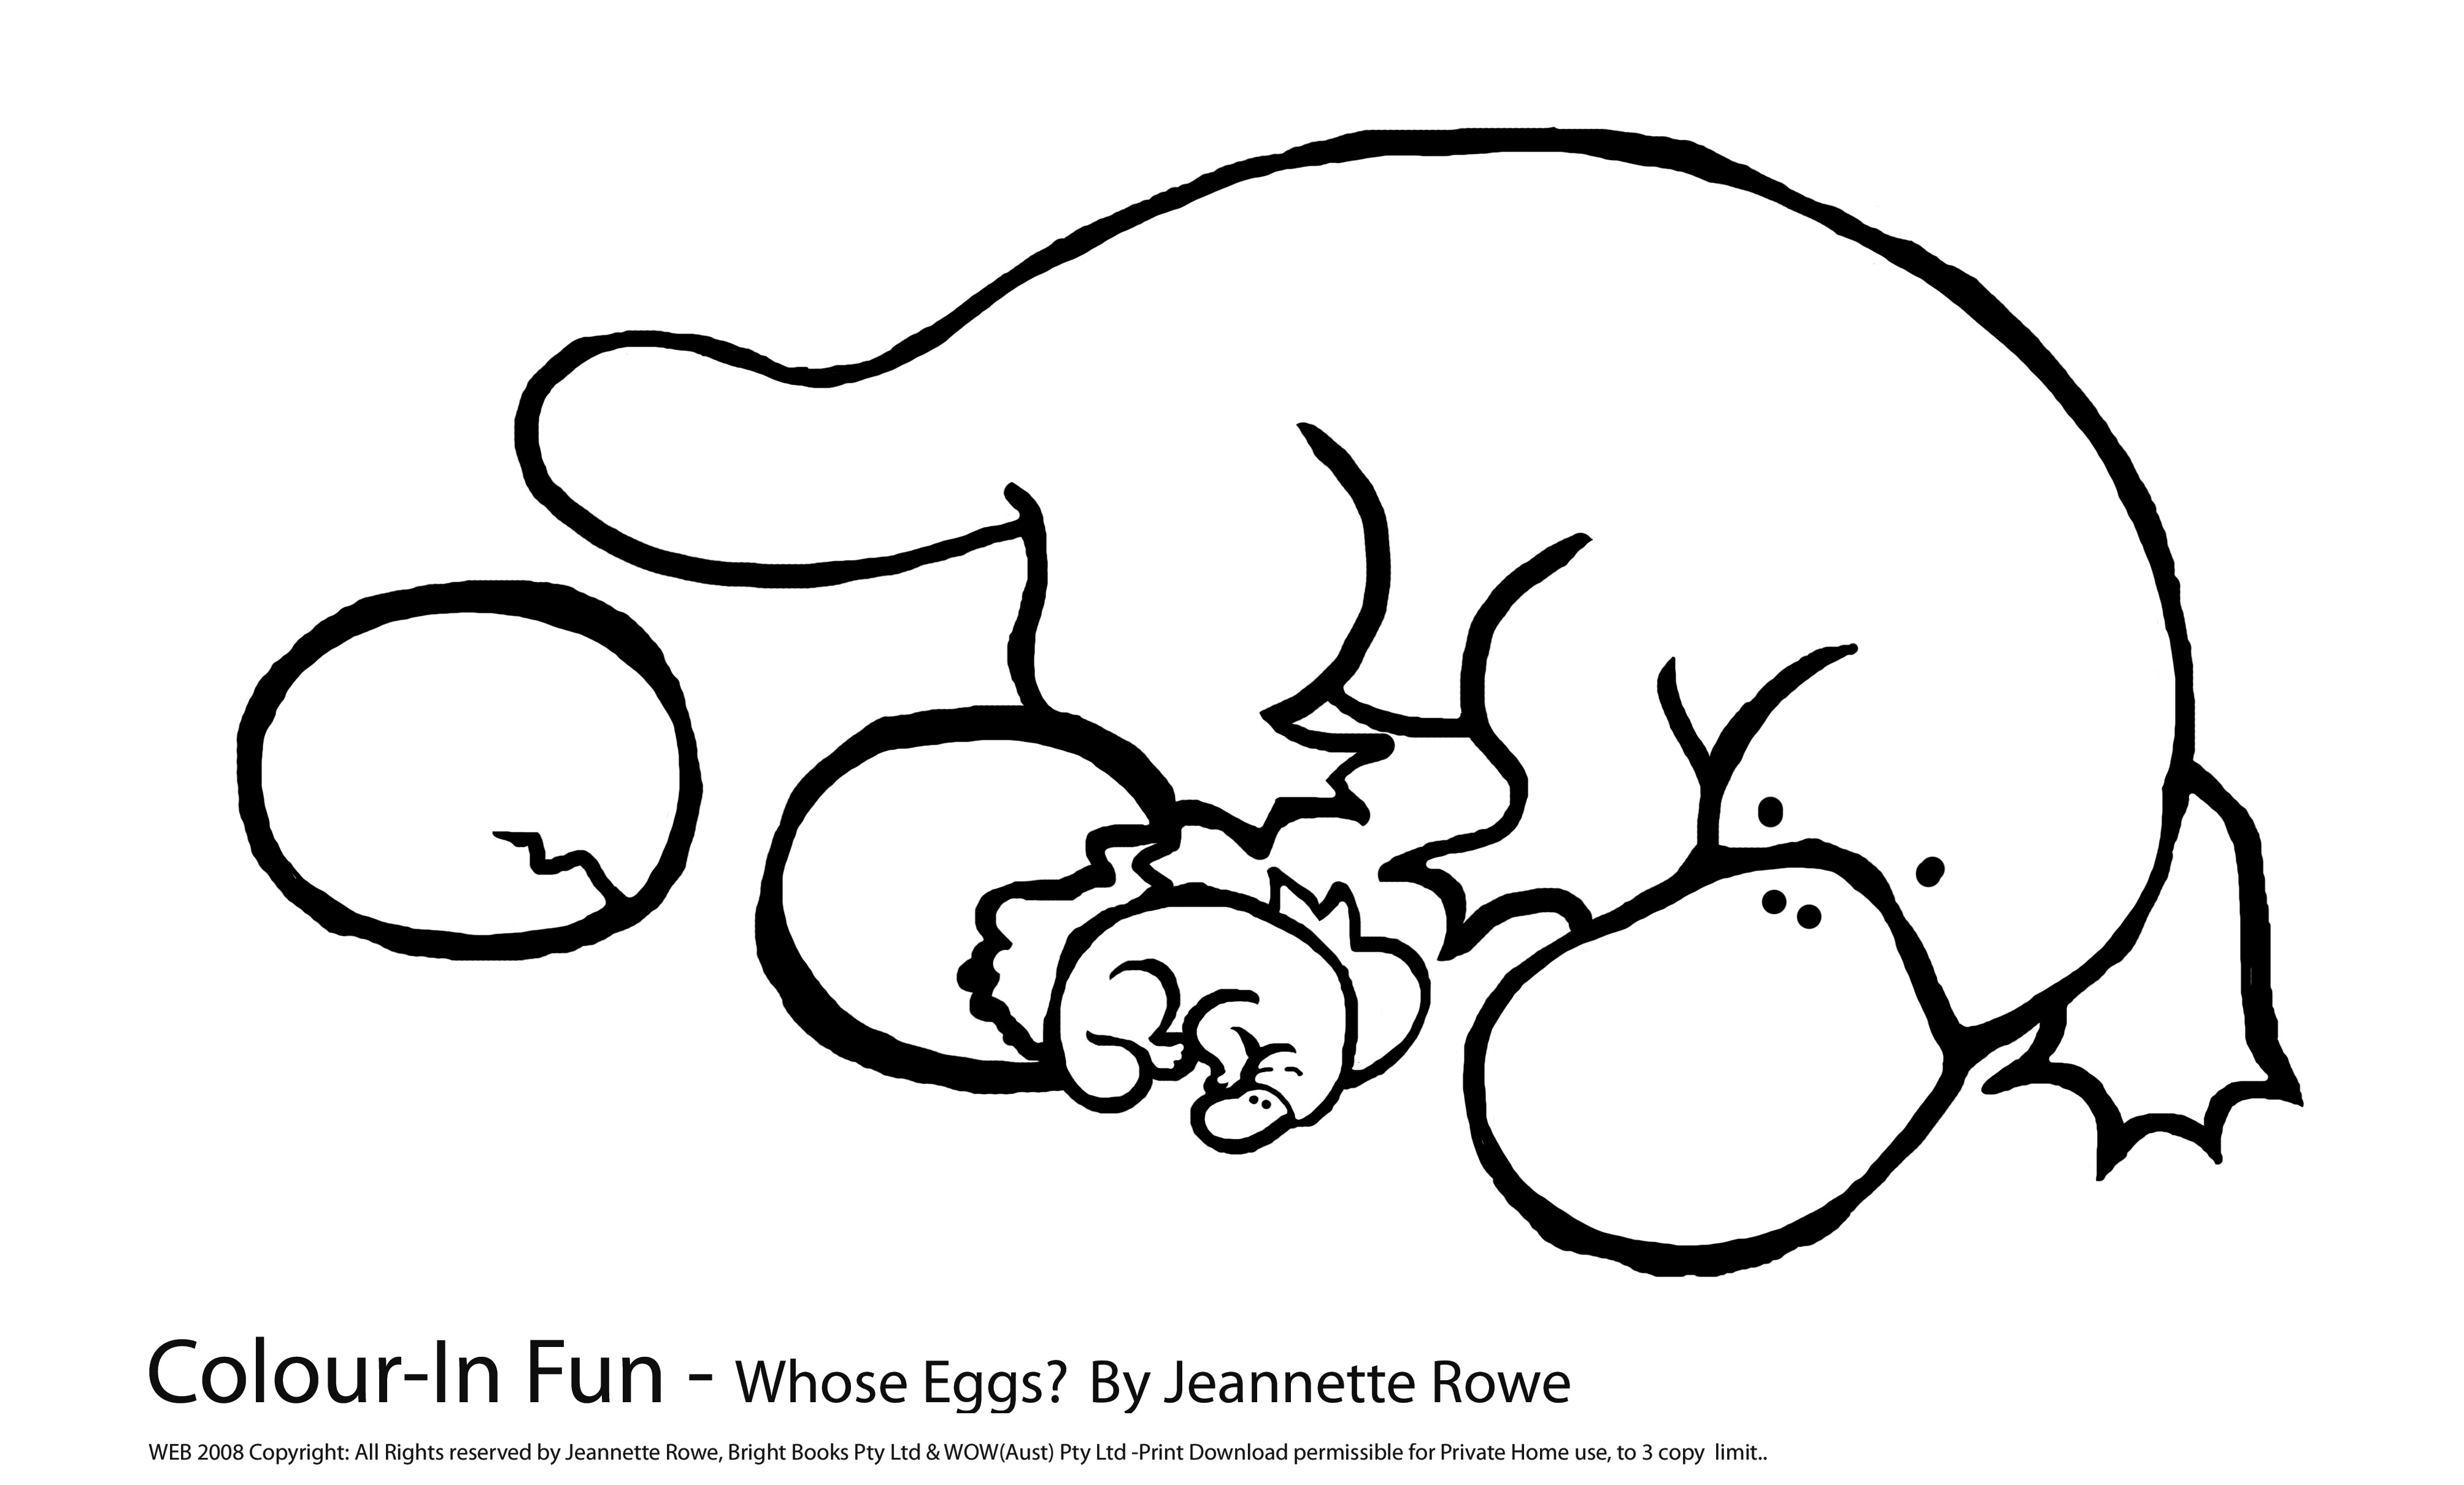 duck billed platypus coloring page australia day an illustration of platypus for australia page platypus coloring billed duck